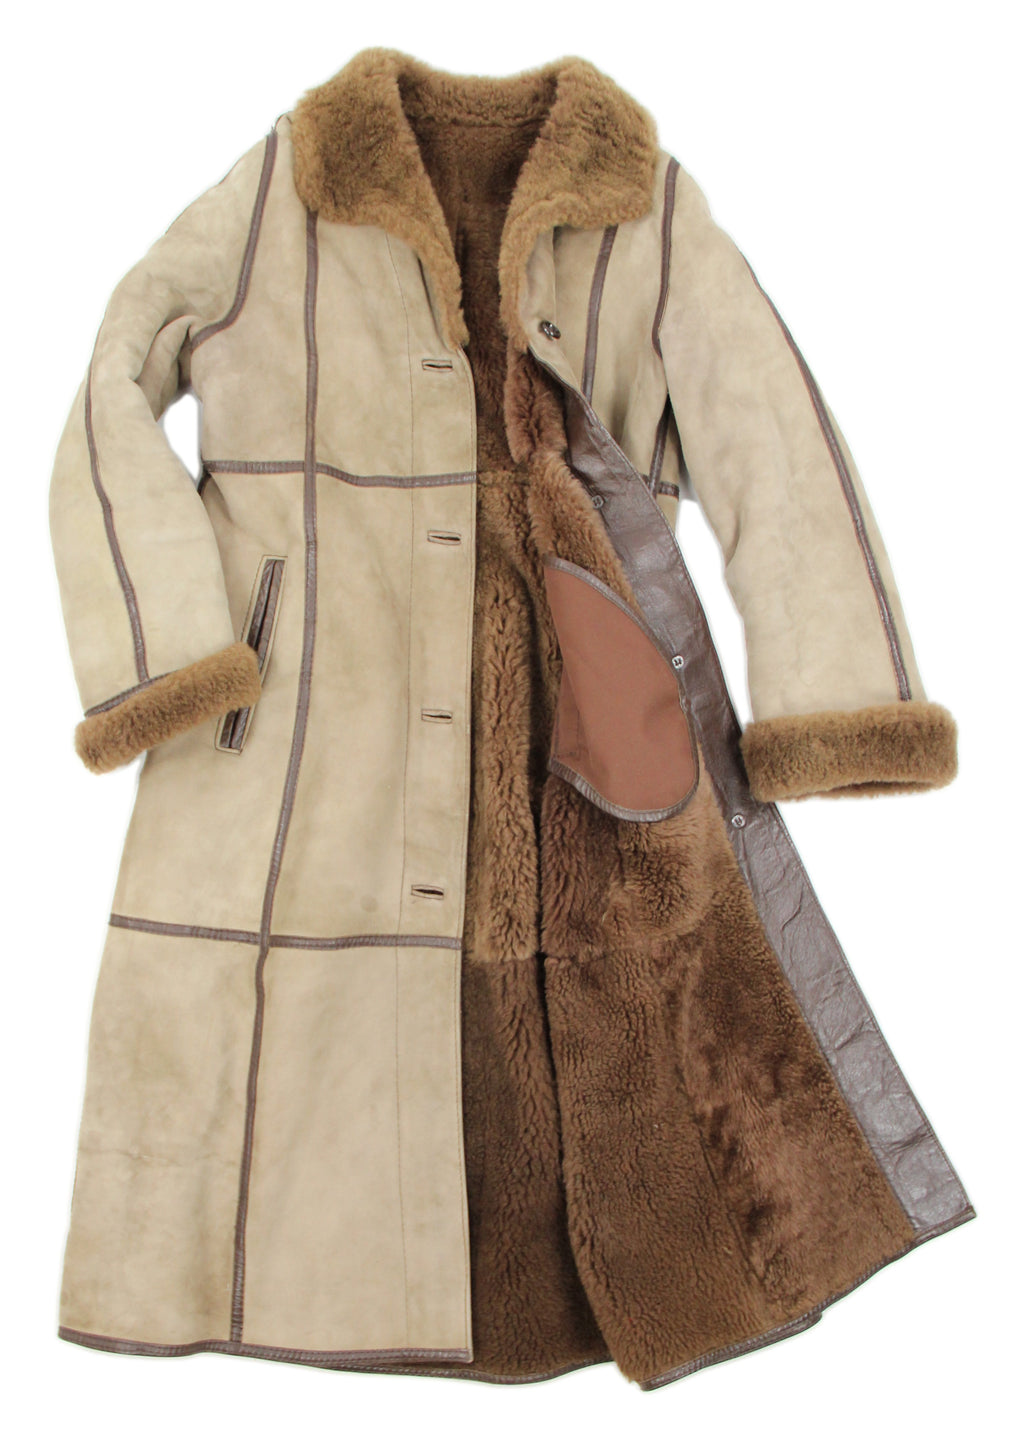 Amoress A-line Long Shearling Coat, Size M